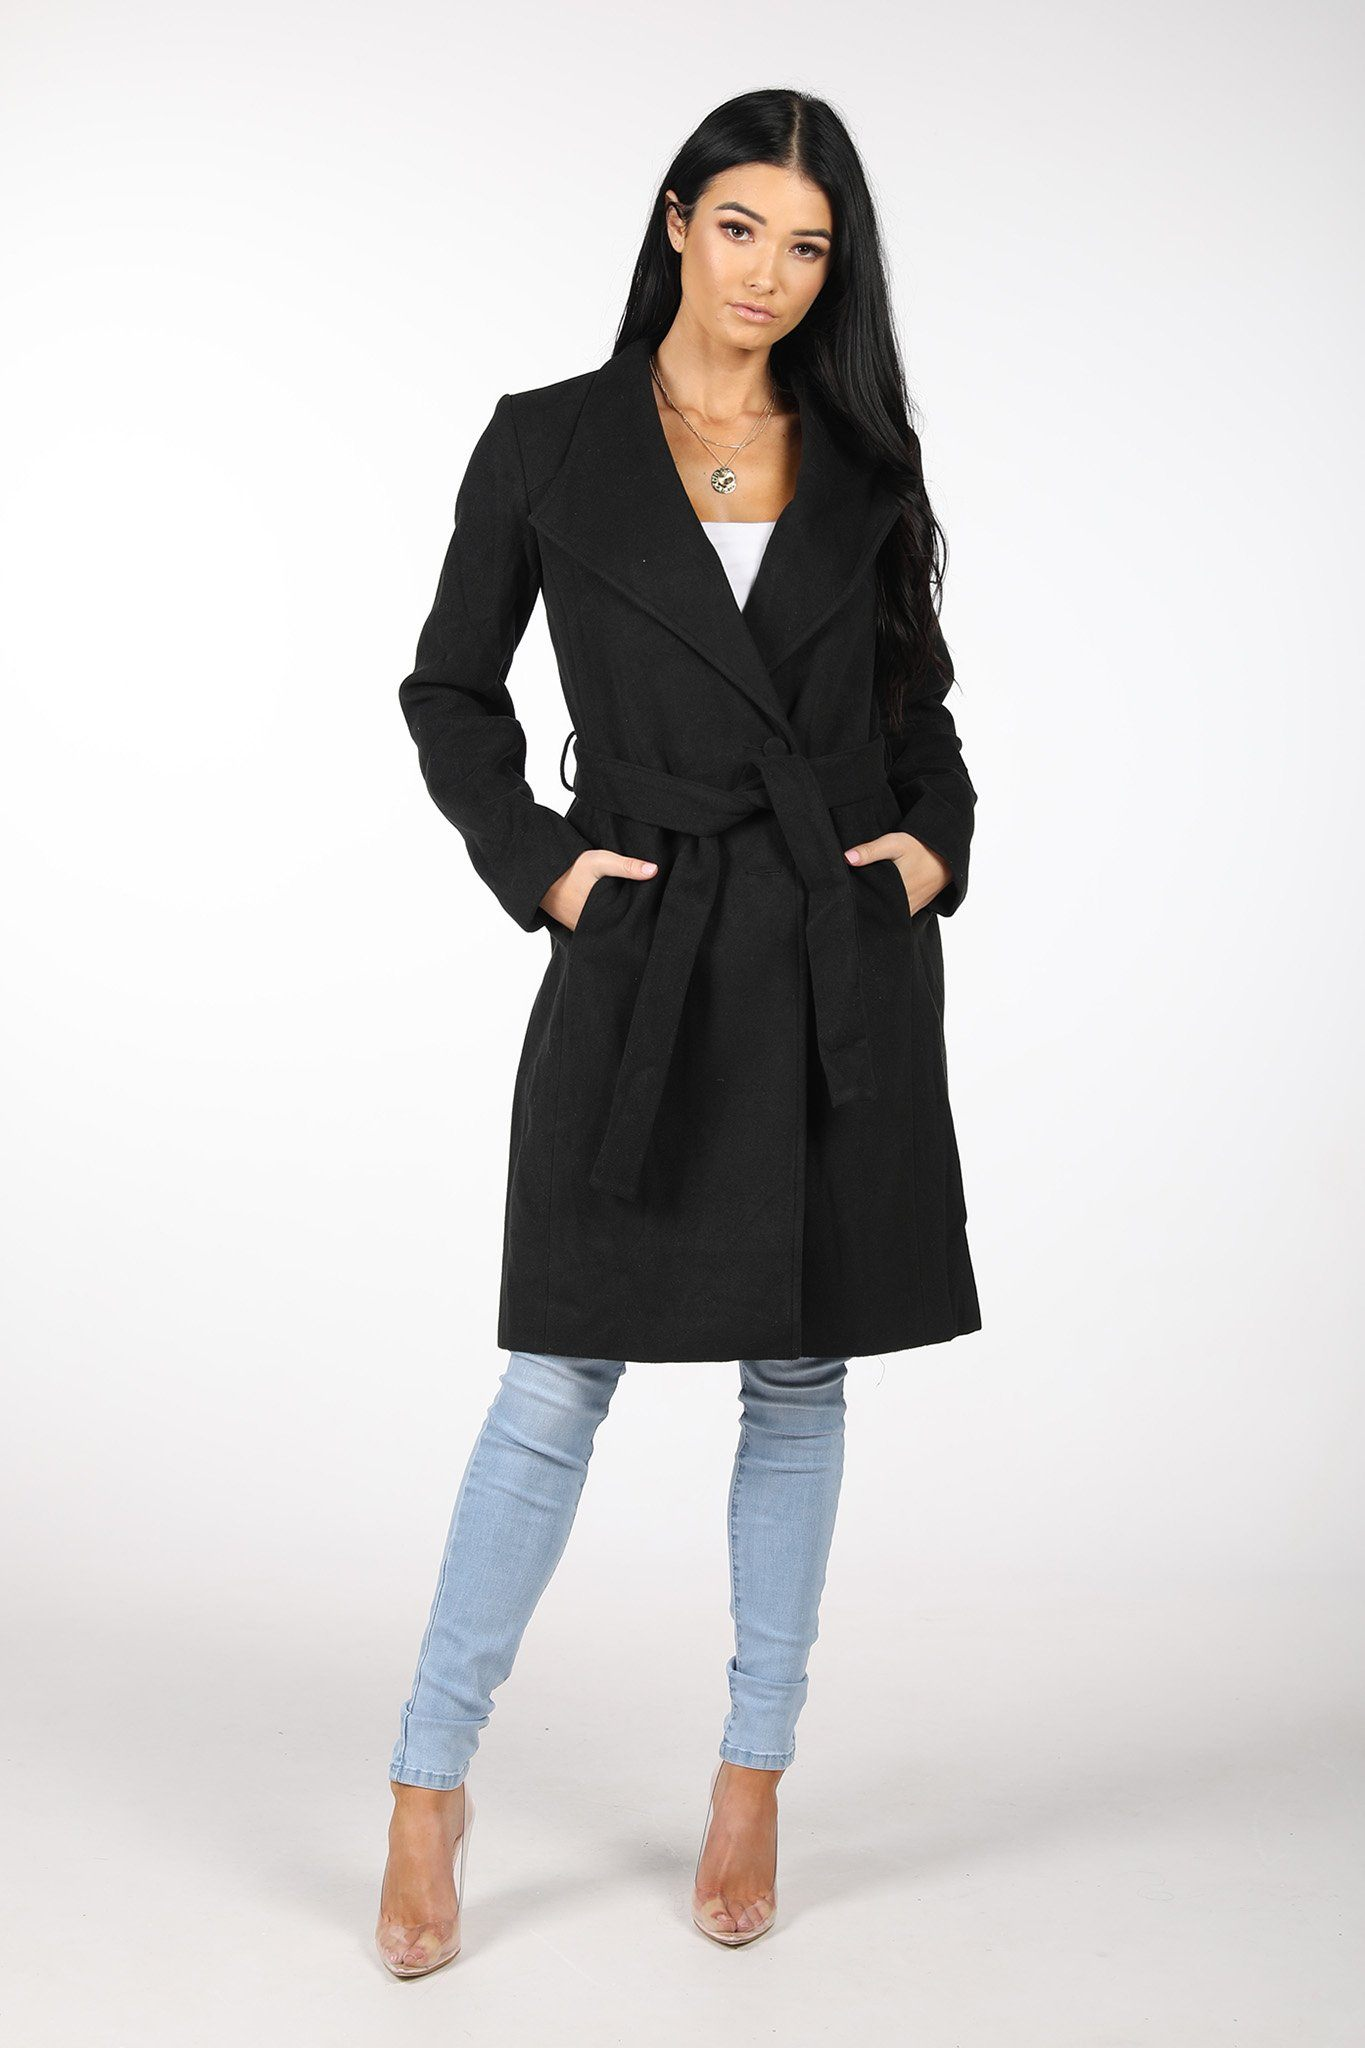 Black Long Wool Blend Wrap Coat with Pockets and Detachable Belt